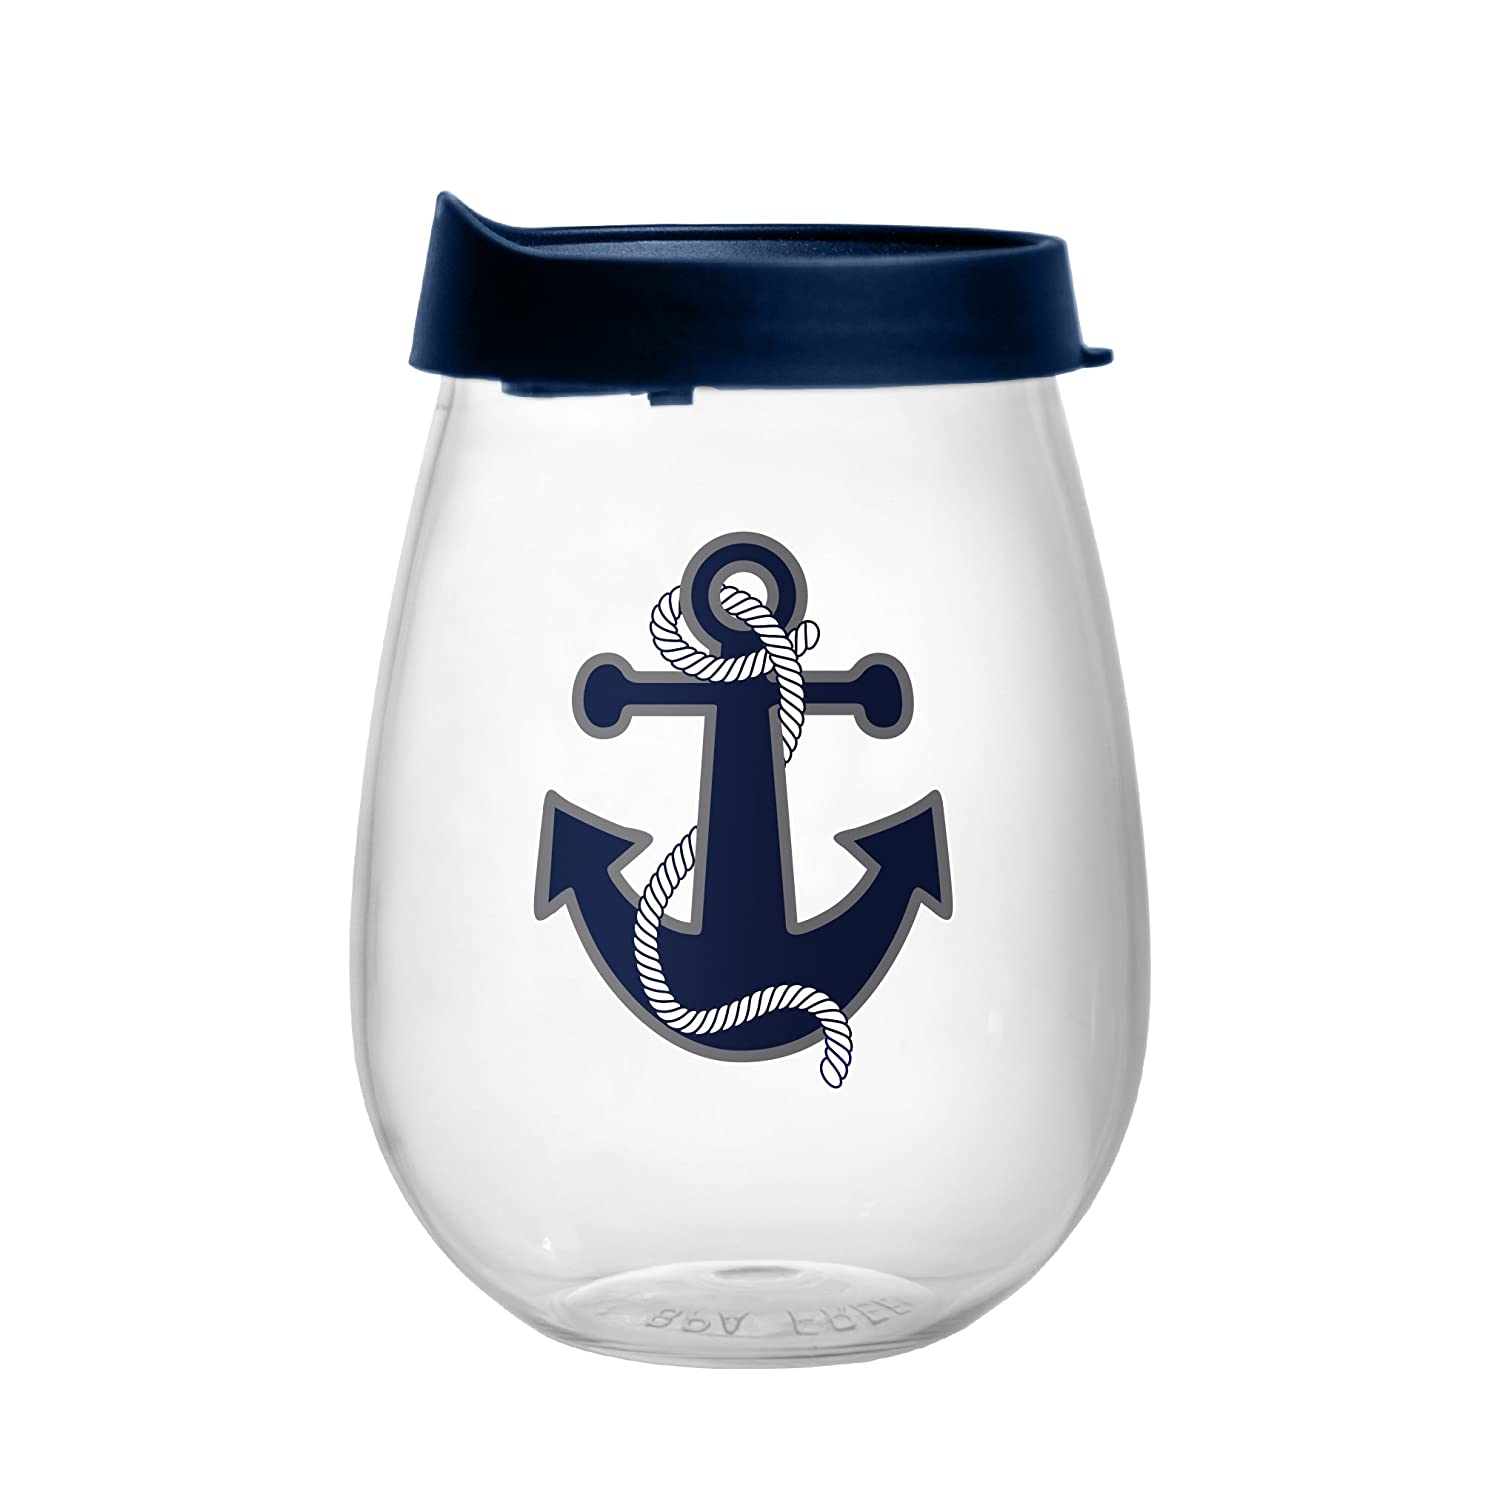 18-ounce Boelter Brands Nautical Plastic Curved Beverage Glass